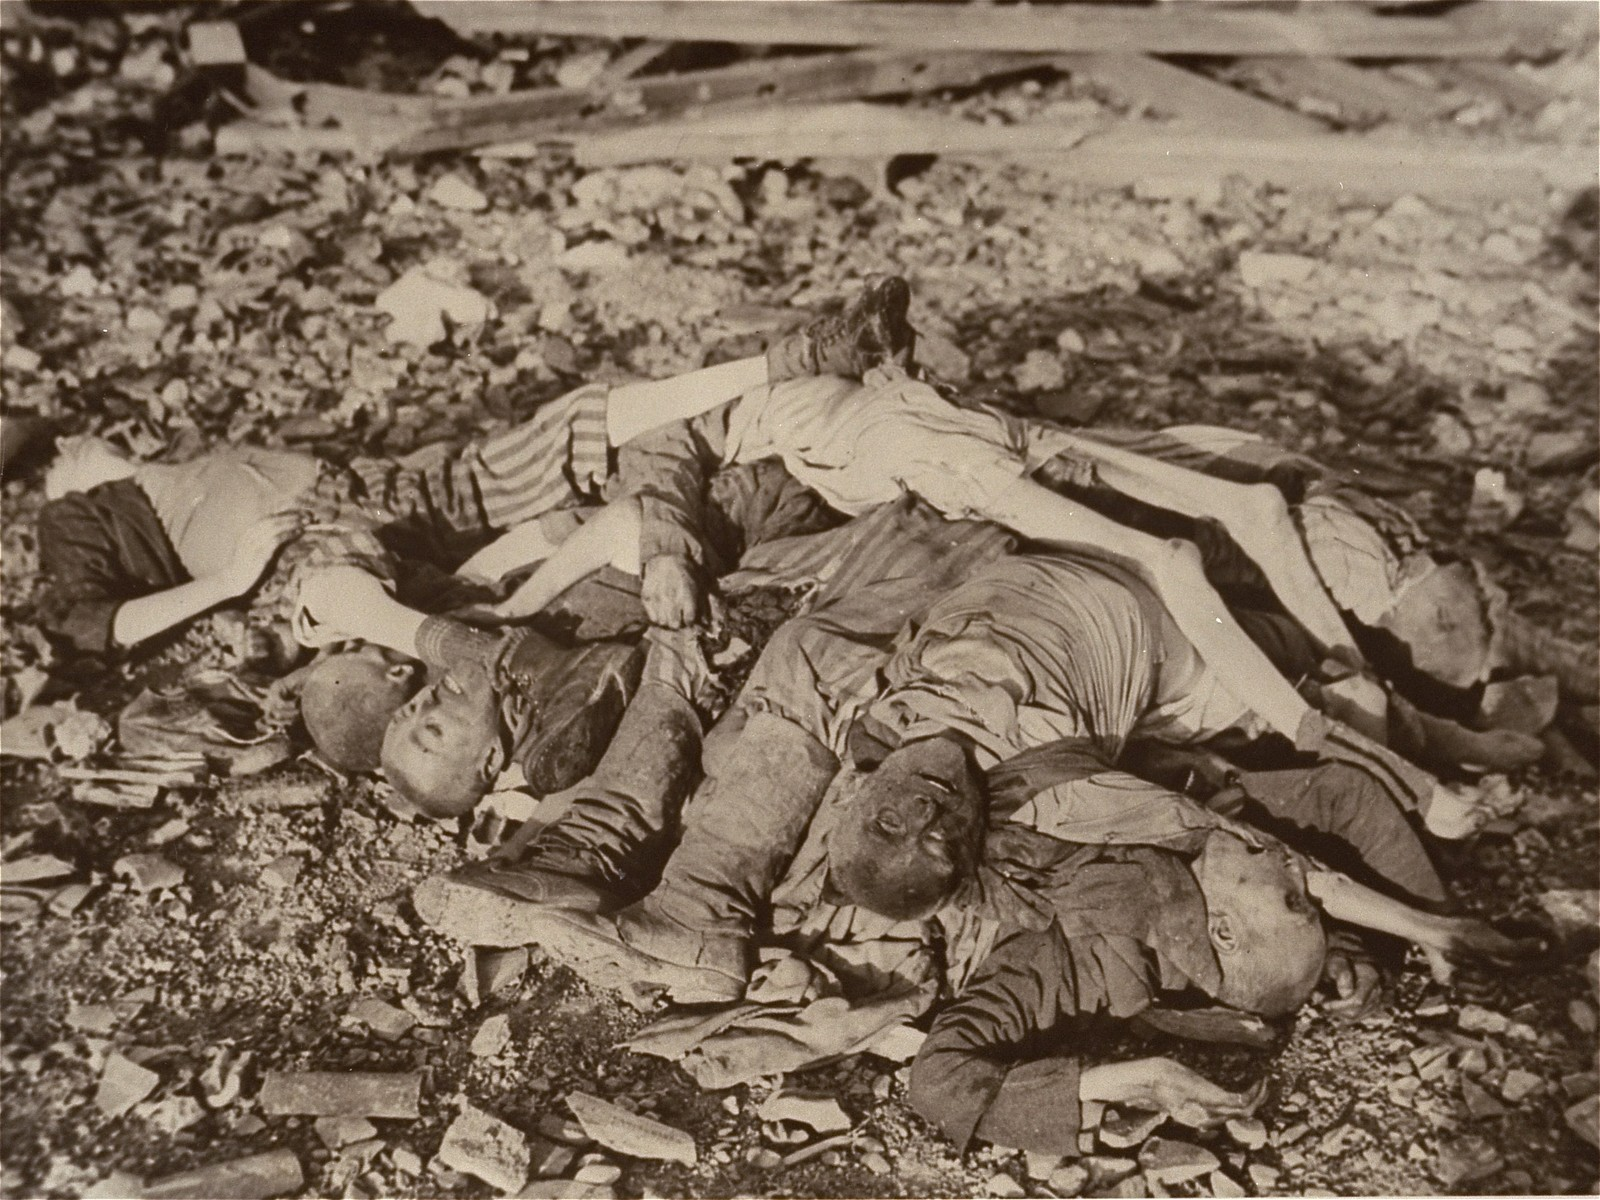 "The bodies of prisoners lie on the ground in the newly liberated Nordhausen concentration camp.  The original Signal Corps caption reads, ""U.S TROOPS OPEN GATES OF V-BOMB HORROR CAMP.  Nazi weapons of death made by dying slaves is the grim story of Nordhausen, Reich center for V-bomb production which was captured by troops of the First U.S. Army April 10, 1945.  Hundreds of dead and dying lay in the same beds in a nearby slave camp where, according to the liberated, 9,000 lost their lives in 1944.  The American officer in charge immediately orderd the leading citizens of Nordhausen to bury the rotting and skeleton-like dead, choosing a burial site on a hillside overlooking the V-bomb factory where the slave owrkers had been slowly murdered.  The factory, assembly plant for V-1 and V-2 weapons, was a series of deep underground tunnels.  Three main tunnels were connected with 42 smaller ones.  Until May 1944, workers were never allowed outside.  When the slaves, who lavored in 18-hour shifts, became too weak to work, they were loaded into box cars and never seen again.  PNA                                                            EA 62971  THIS PHOTO SHOWS:  The emaciated bodies of Russian, Polish, French, Belgian and Italian prisoners were piled in a heap, like sticks of wood, at the Norhausen slave labor camp.  Forced to work for the Nazi was machine, they starved to death or were shot.   U.S. Signal Corps Photo ETO-HQ-45-32683 SERVICED BY LONDON OWI TO LIST B CERTIFIED AS PASSED BY SHAEF CENSOR"